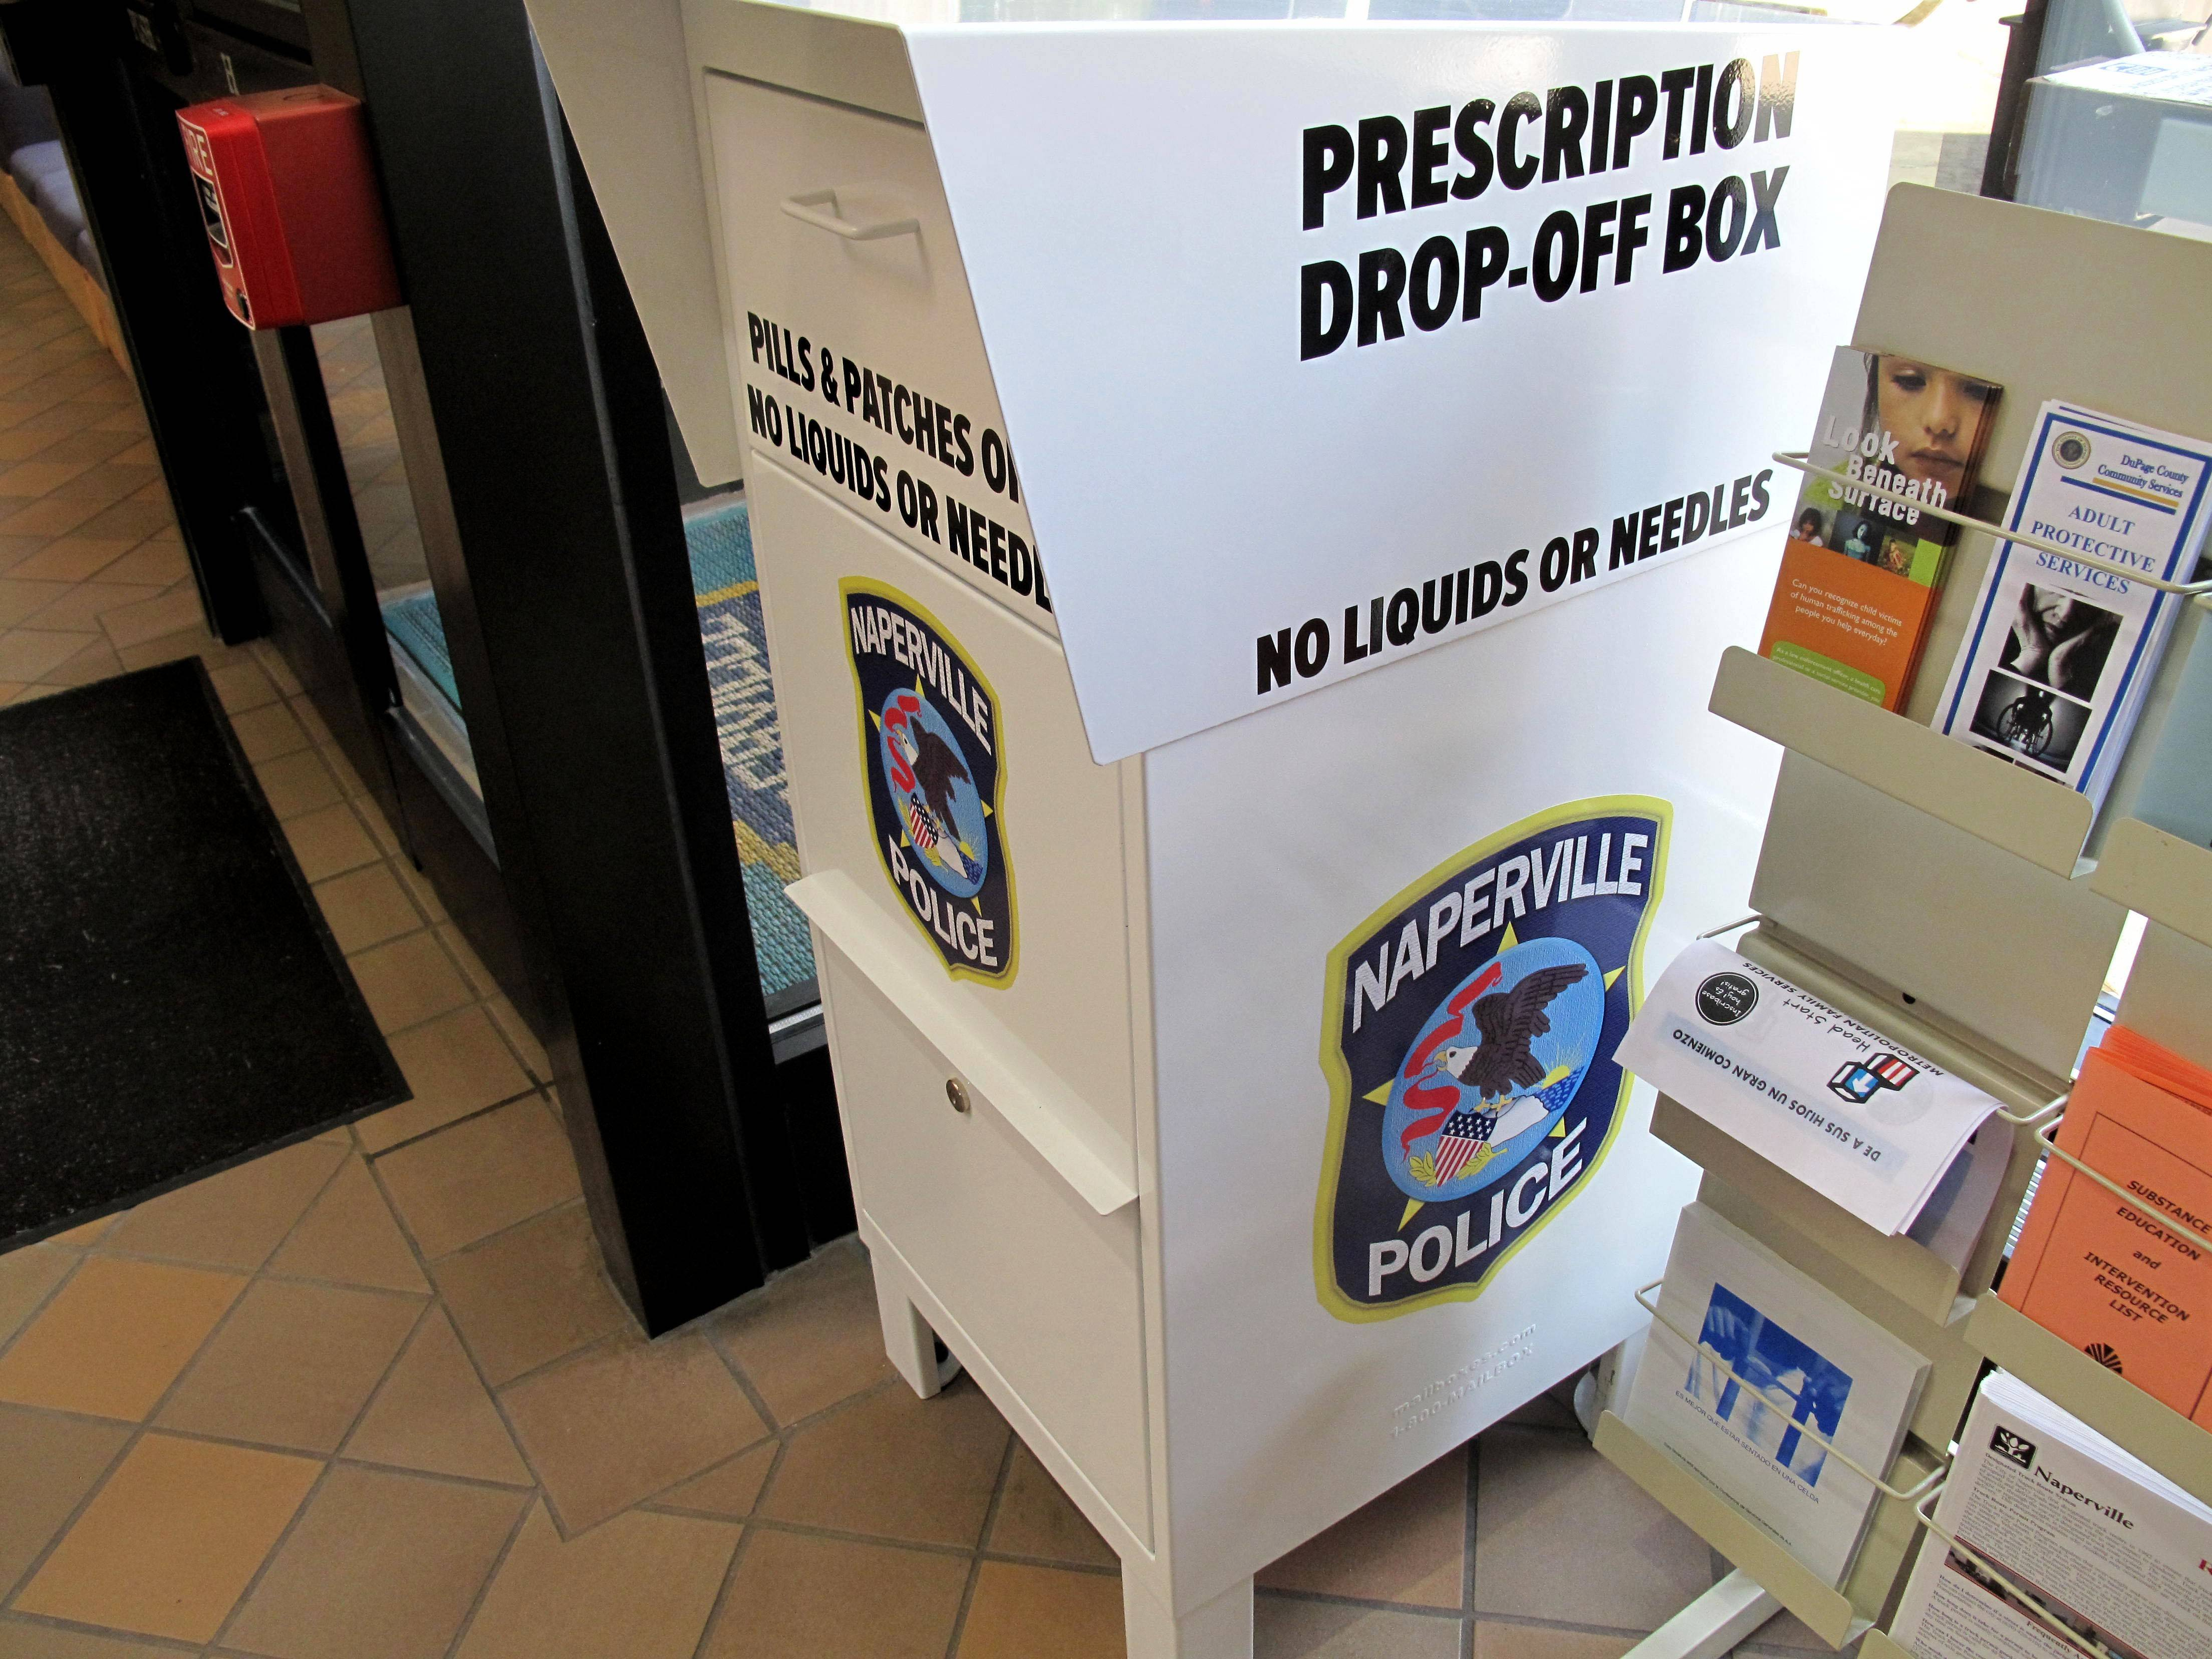 Naperville bringing drug take-back to National Night Out